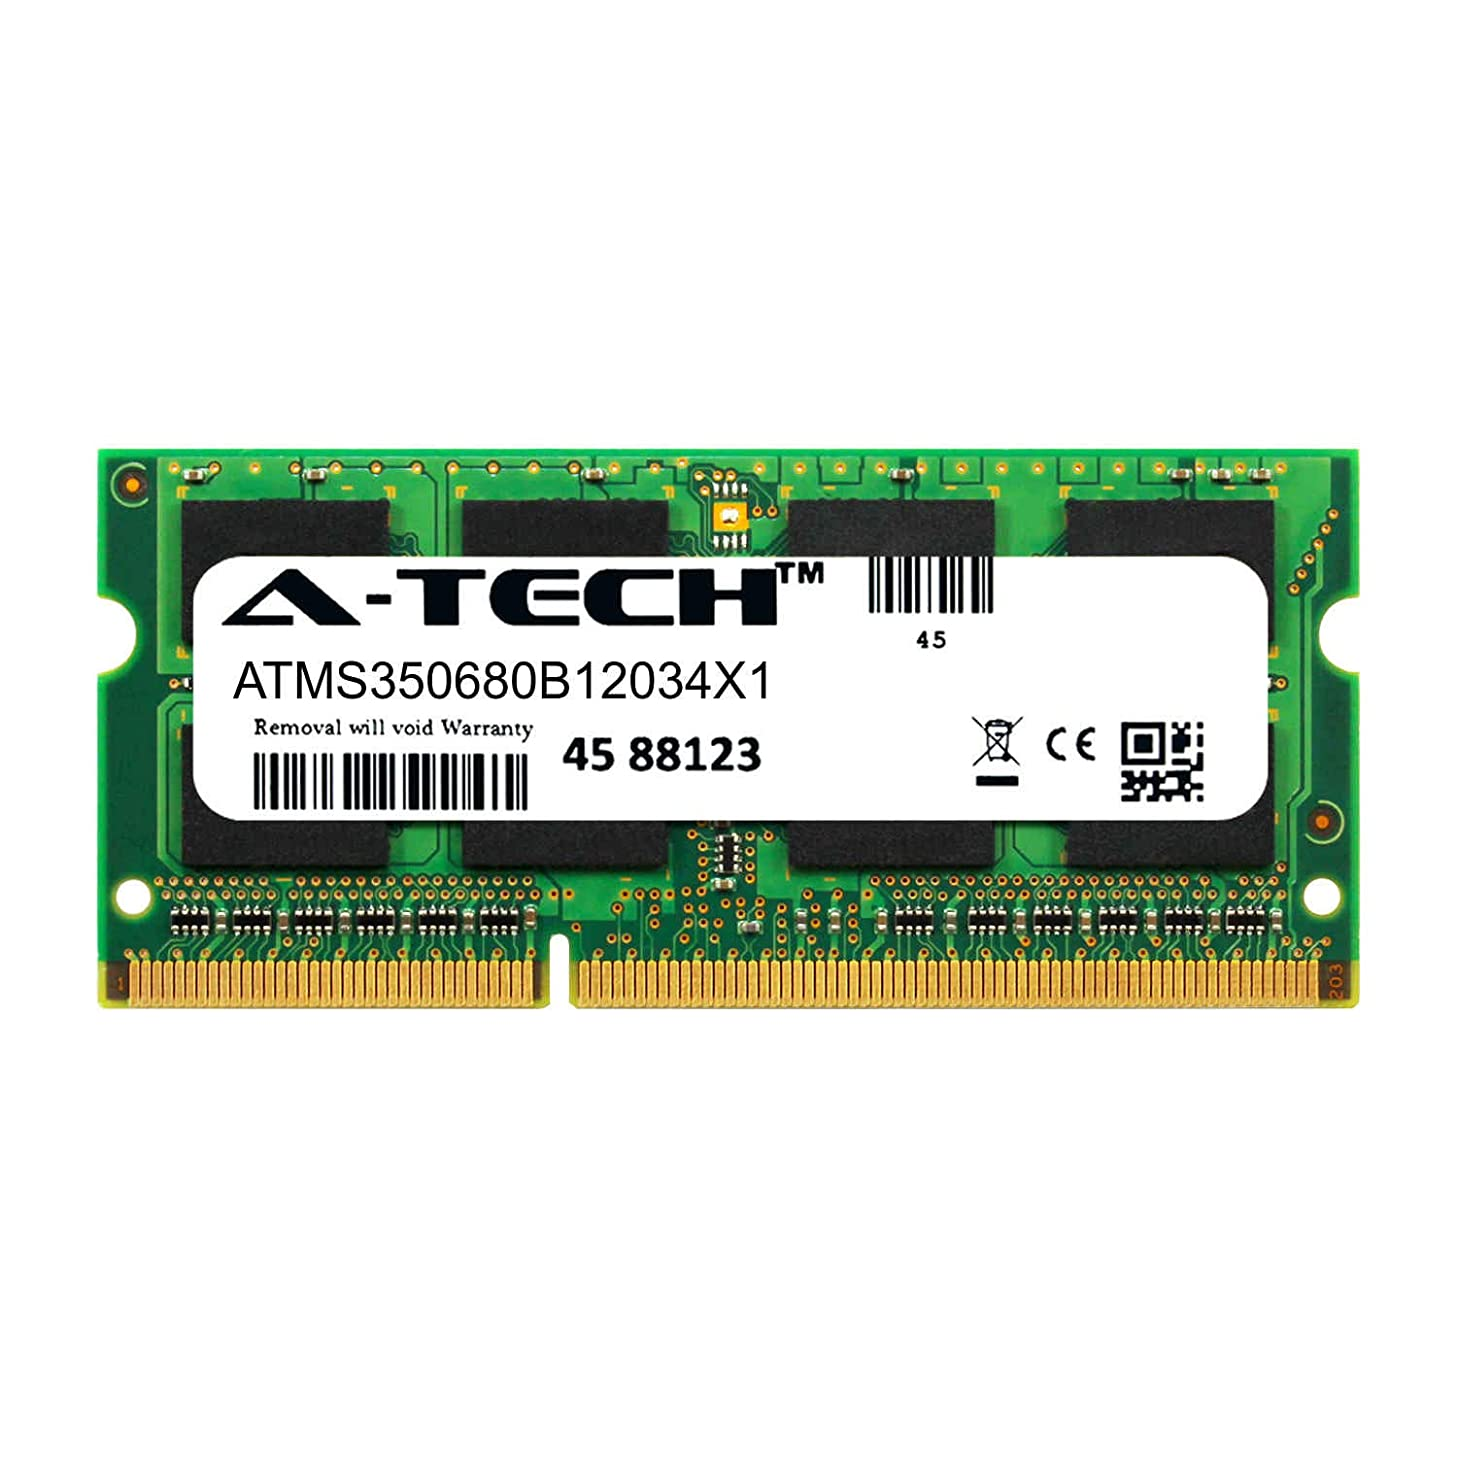 A-Tech 4GB Module for Lenovo ThinkPad T430 Laptop & Notebook Compatible DDR3/DDR3L PC3-12800 1600Mhz Memory Ram (ATMS350680B12034X1)